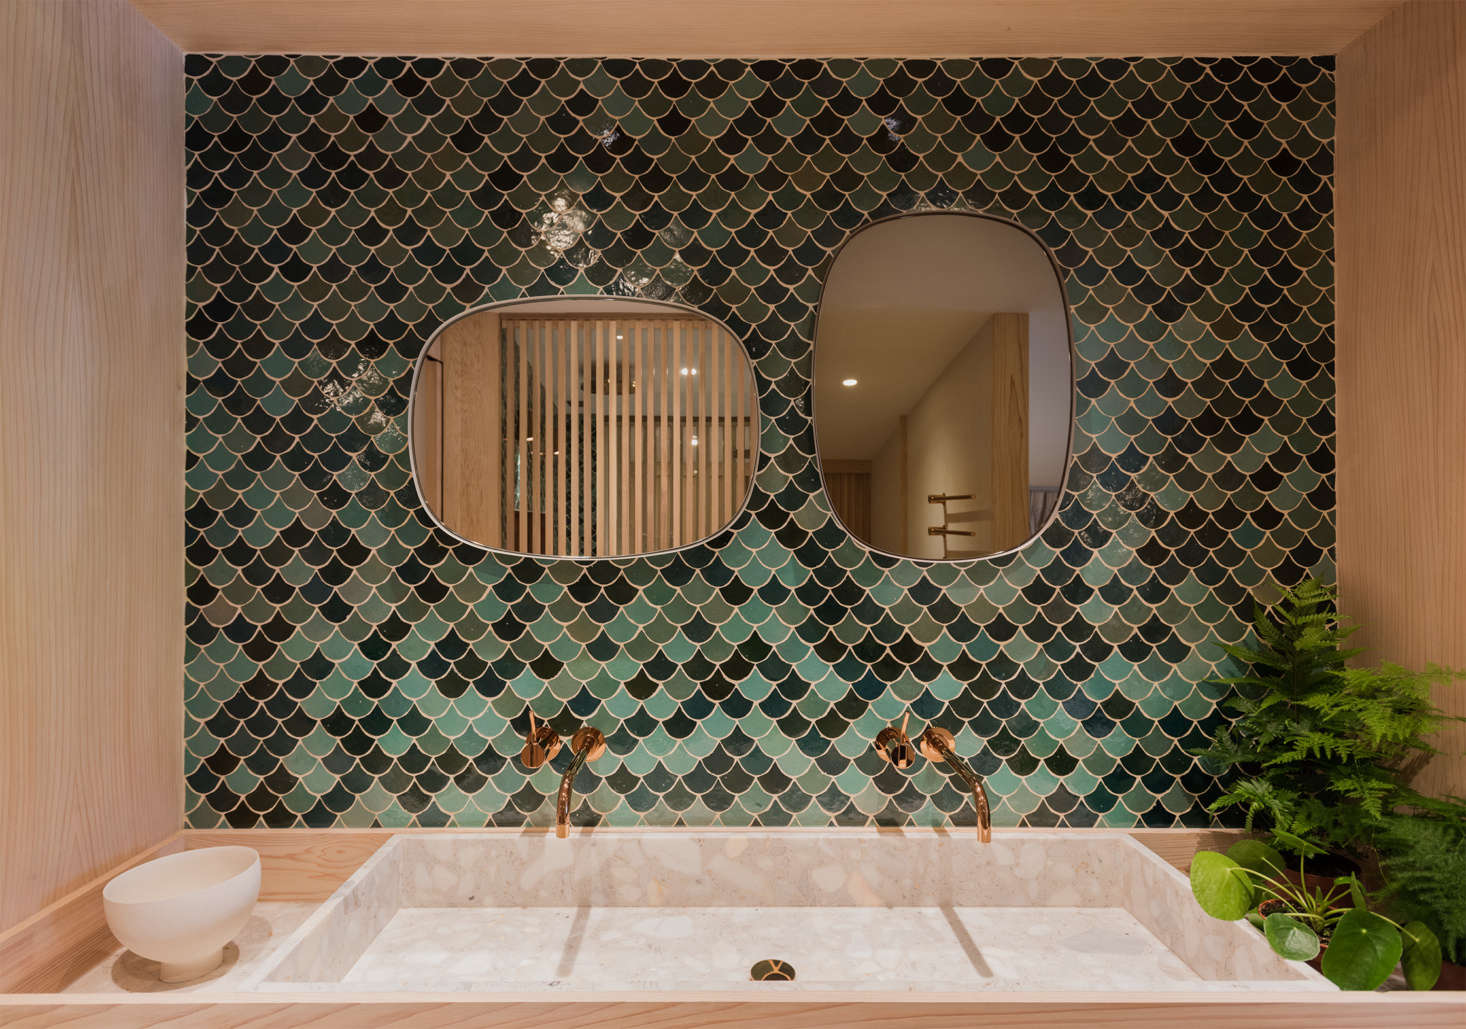 Two Vola polished brass faucets jut from a wall of handmade Moroccan tiles, in varying shades of green, from Emery et Cie. Photograph by Michelle Young, courtesy of StudioUlanowski, from House Tour: A Flexible Pied-à-Terre in London for a Jewelry Designer and Her Family.